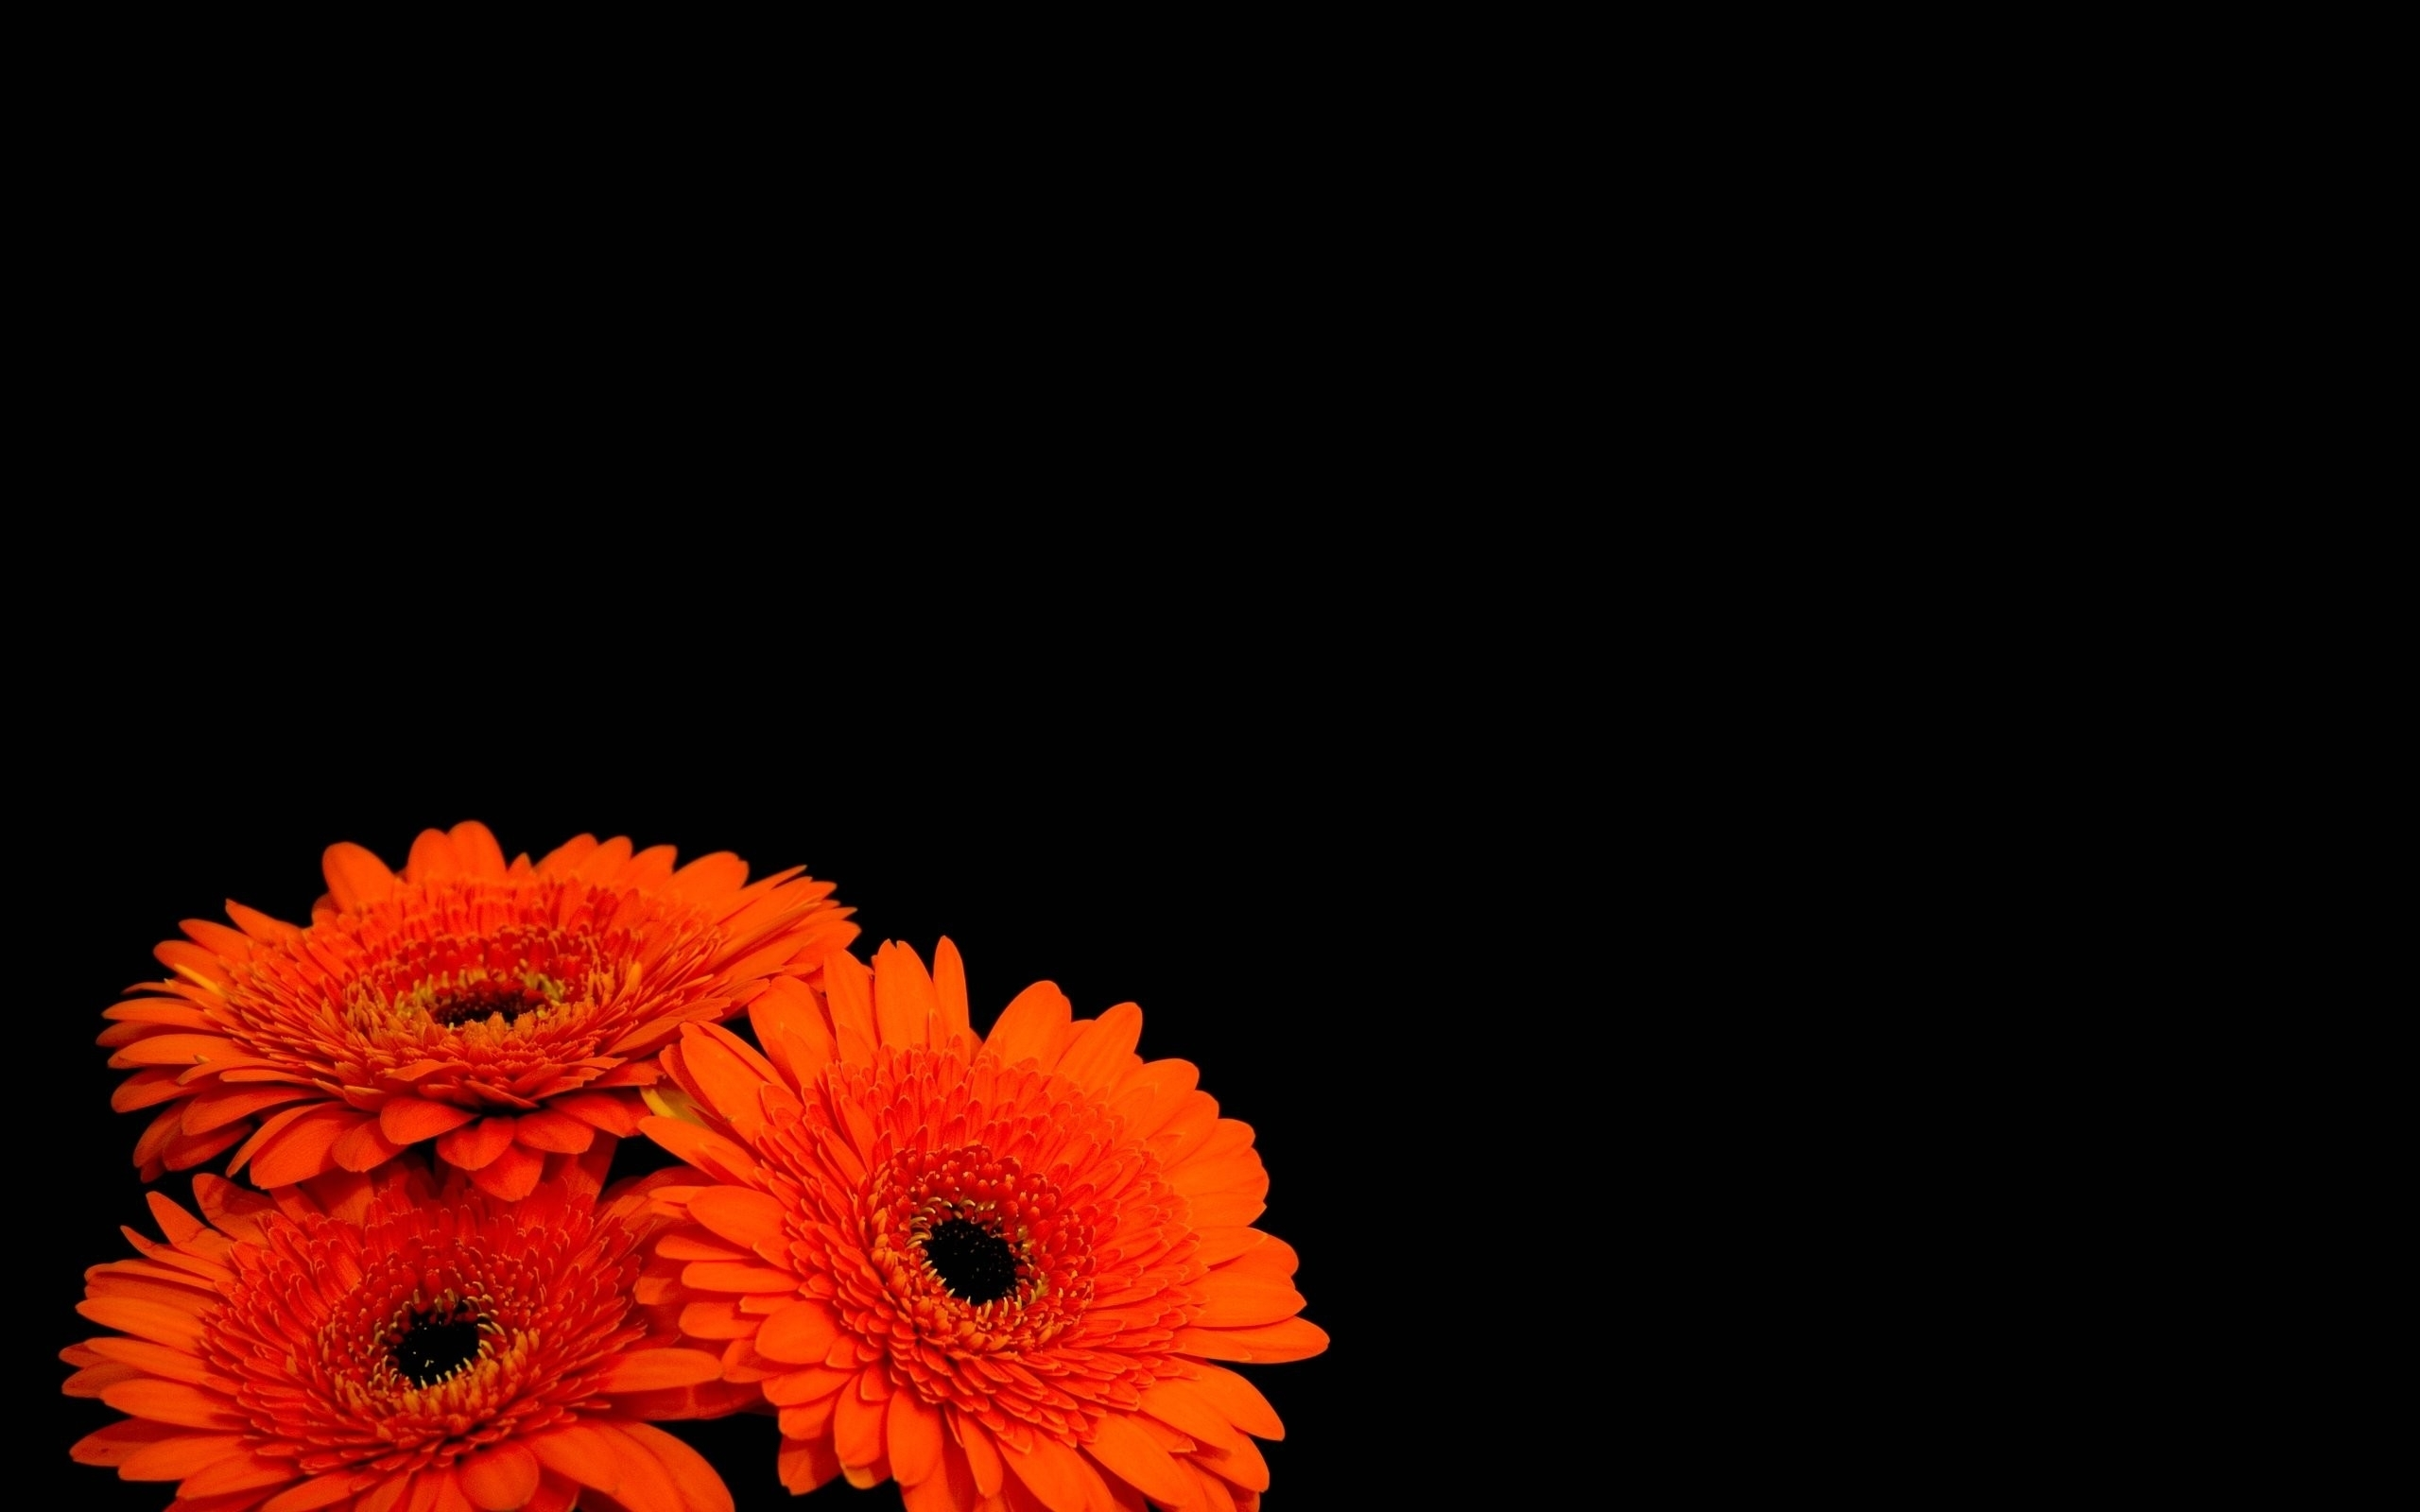 Flowers black background orange flowers HD Wallpapers 2560x1600